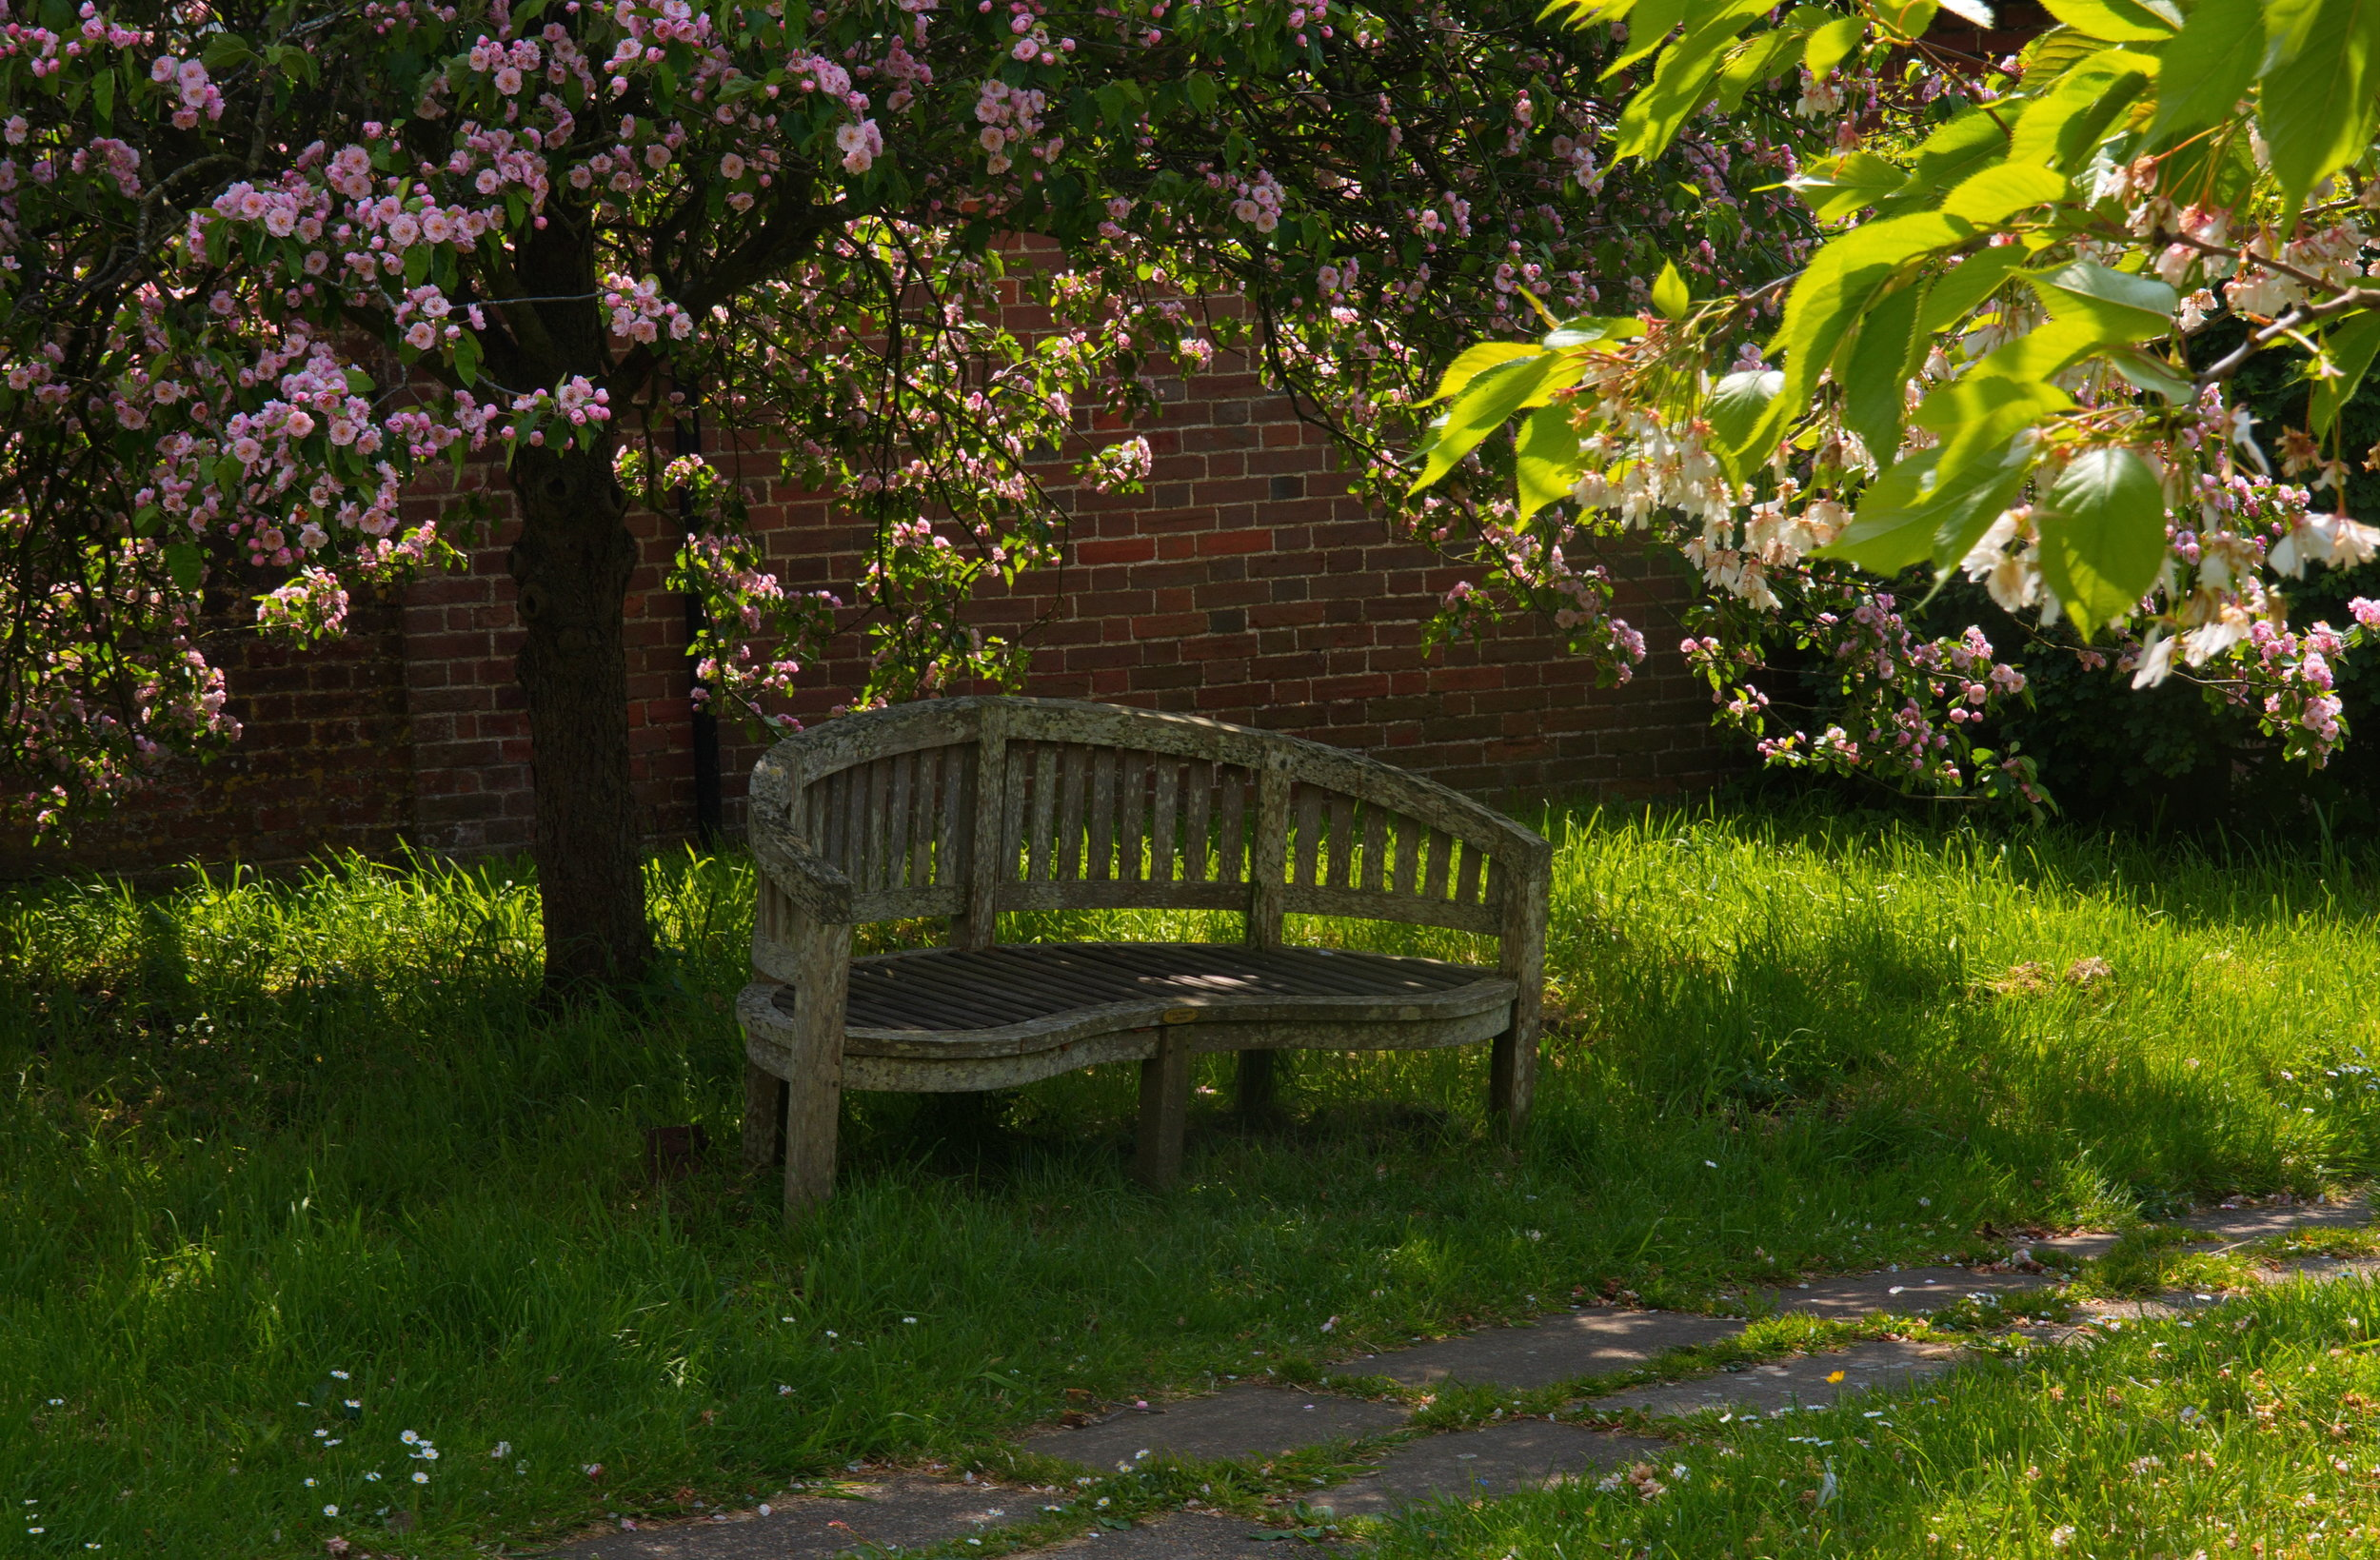 bench-in-st-margarets-churchyard-hothfield_46480389005_o.jpg